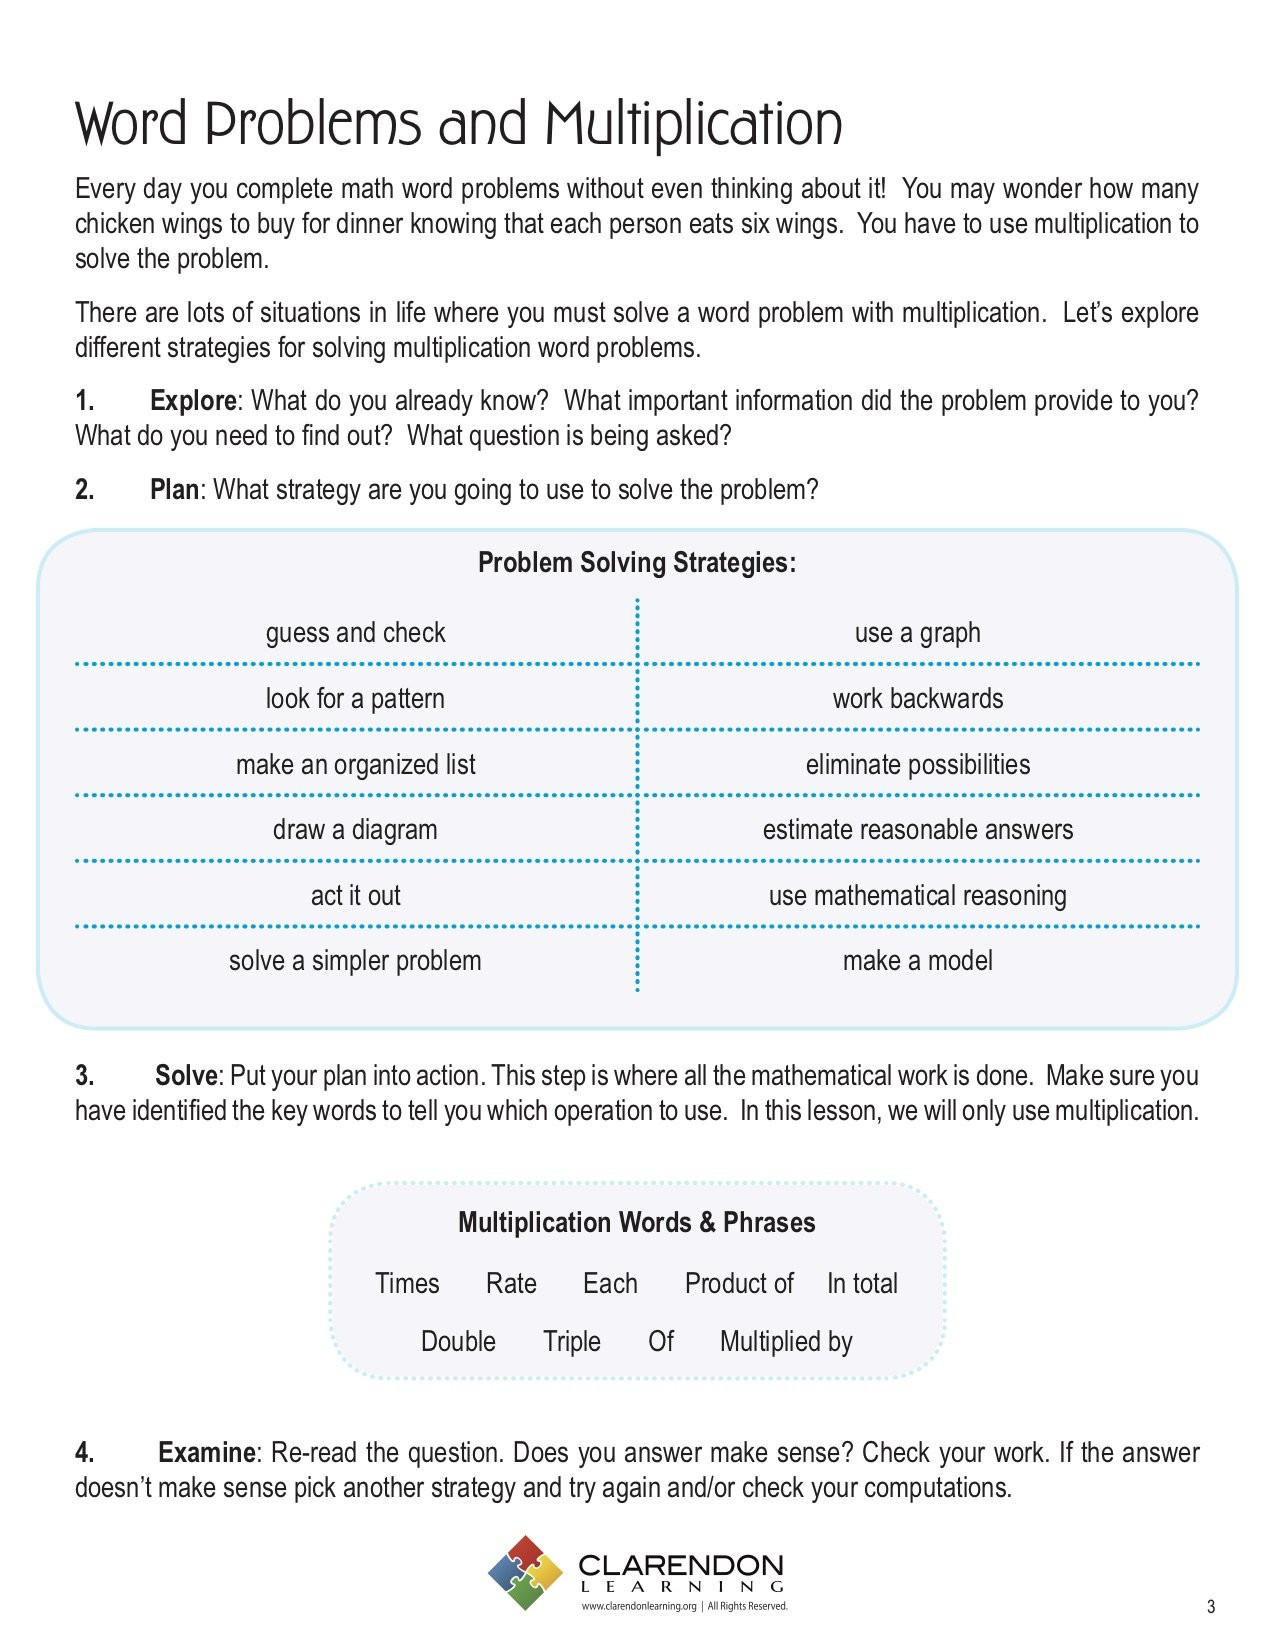 Estimating Word Problems 3rd Grade Worksheets Word Problems and Multiplication Worksheet 3rd